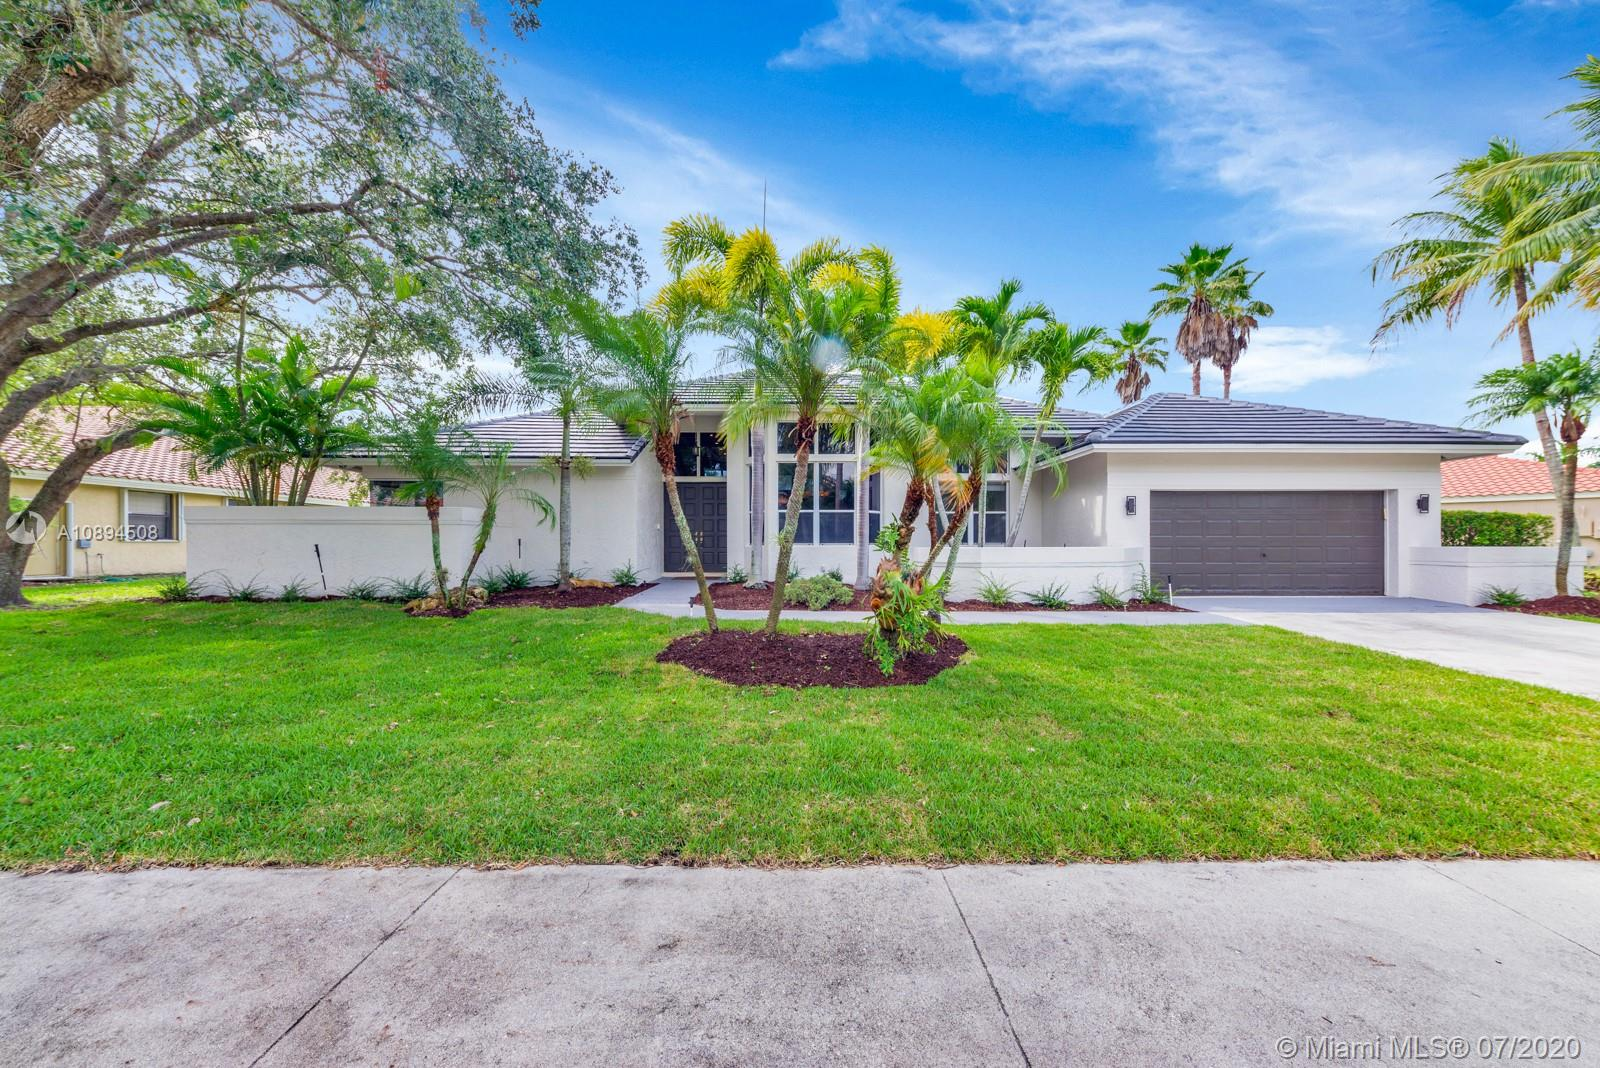 Enter the Gated boutique community of Palm Island. This custom one story is tucked on a private Royal Palm tree lined street, walking distance to community park, schools and Weston Town Center.  Enjoy four spacious bedrooms and 3 bathrooms. Soaring ceilings extensive crown molding, brand new 2020 roof. New A/C unit. Modern flooring throughout, new flooring in all bedrooms. Patio and backyard views from all main living areas  Oversized primary bedroom with his and her walk-in closets with built-ins, separate linen closet and a large bathroom suite with built-in marble tub and expansive shower. Many large windows bring in plenty of natural light. Updated kitchen with wood cabinets and stainless steel appliances, granite countertops Large lot with a large, grassy backyard.